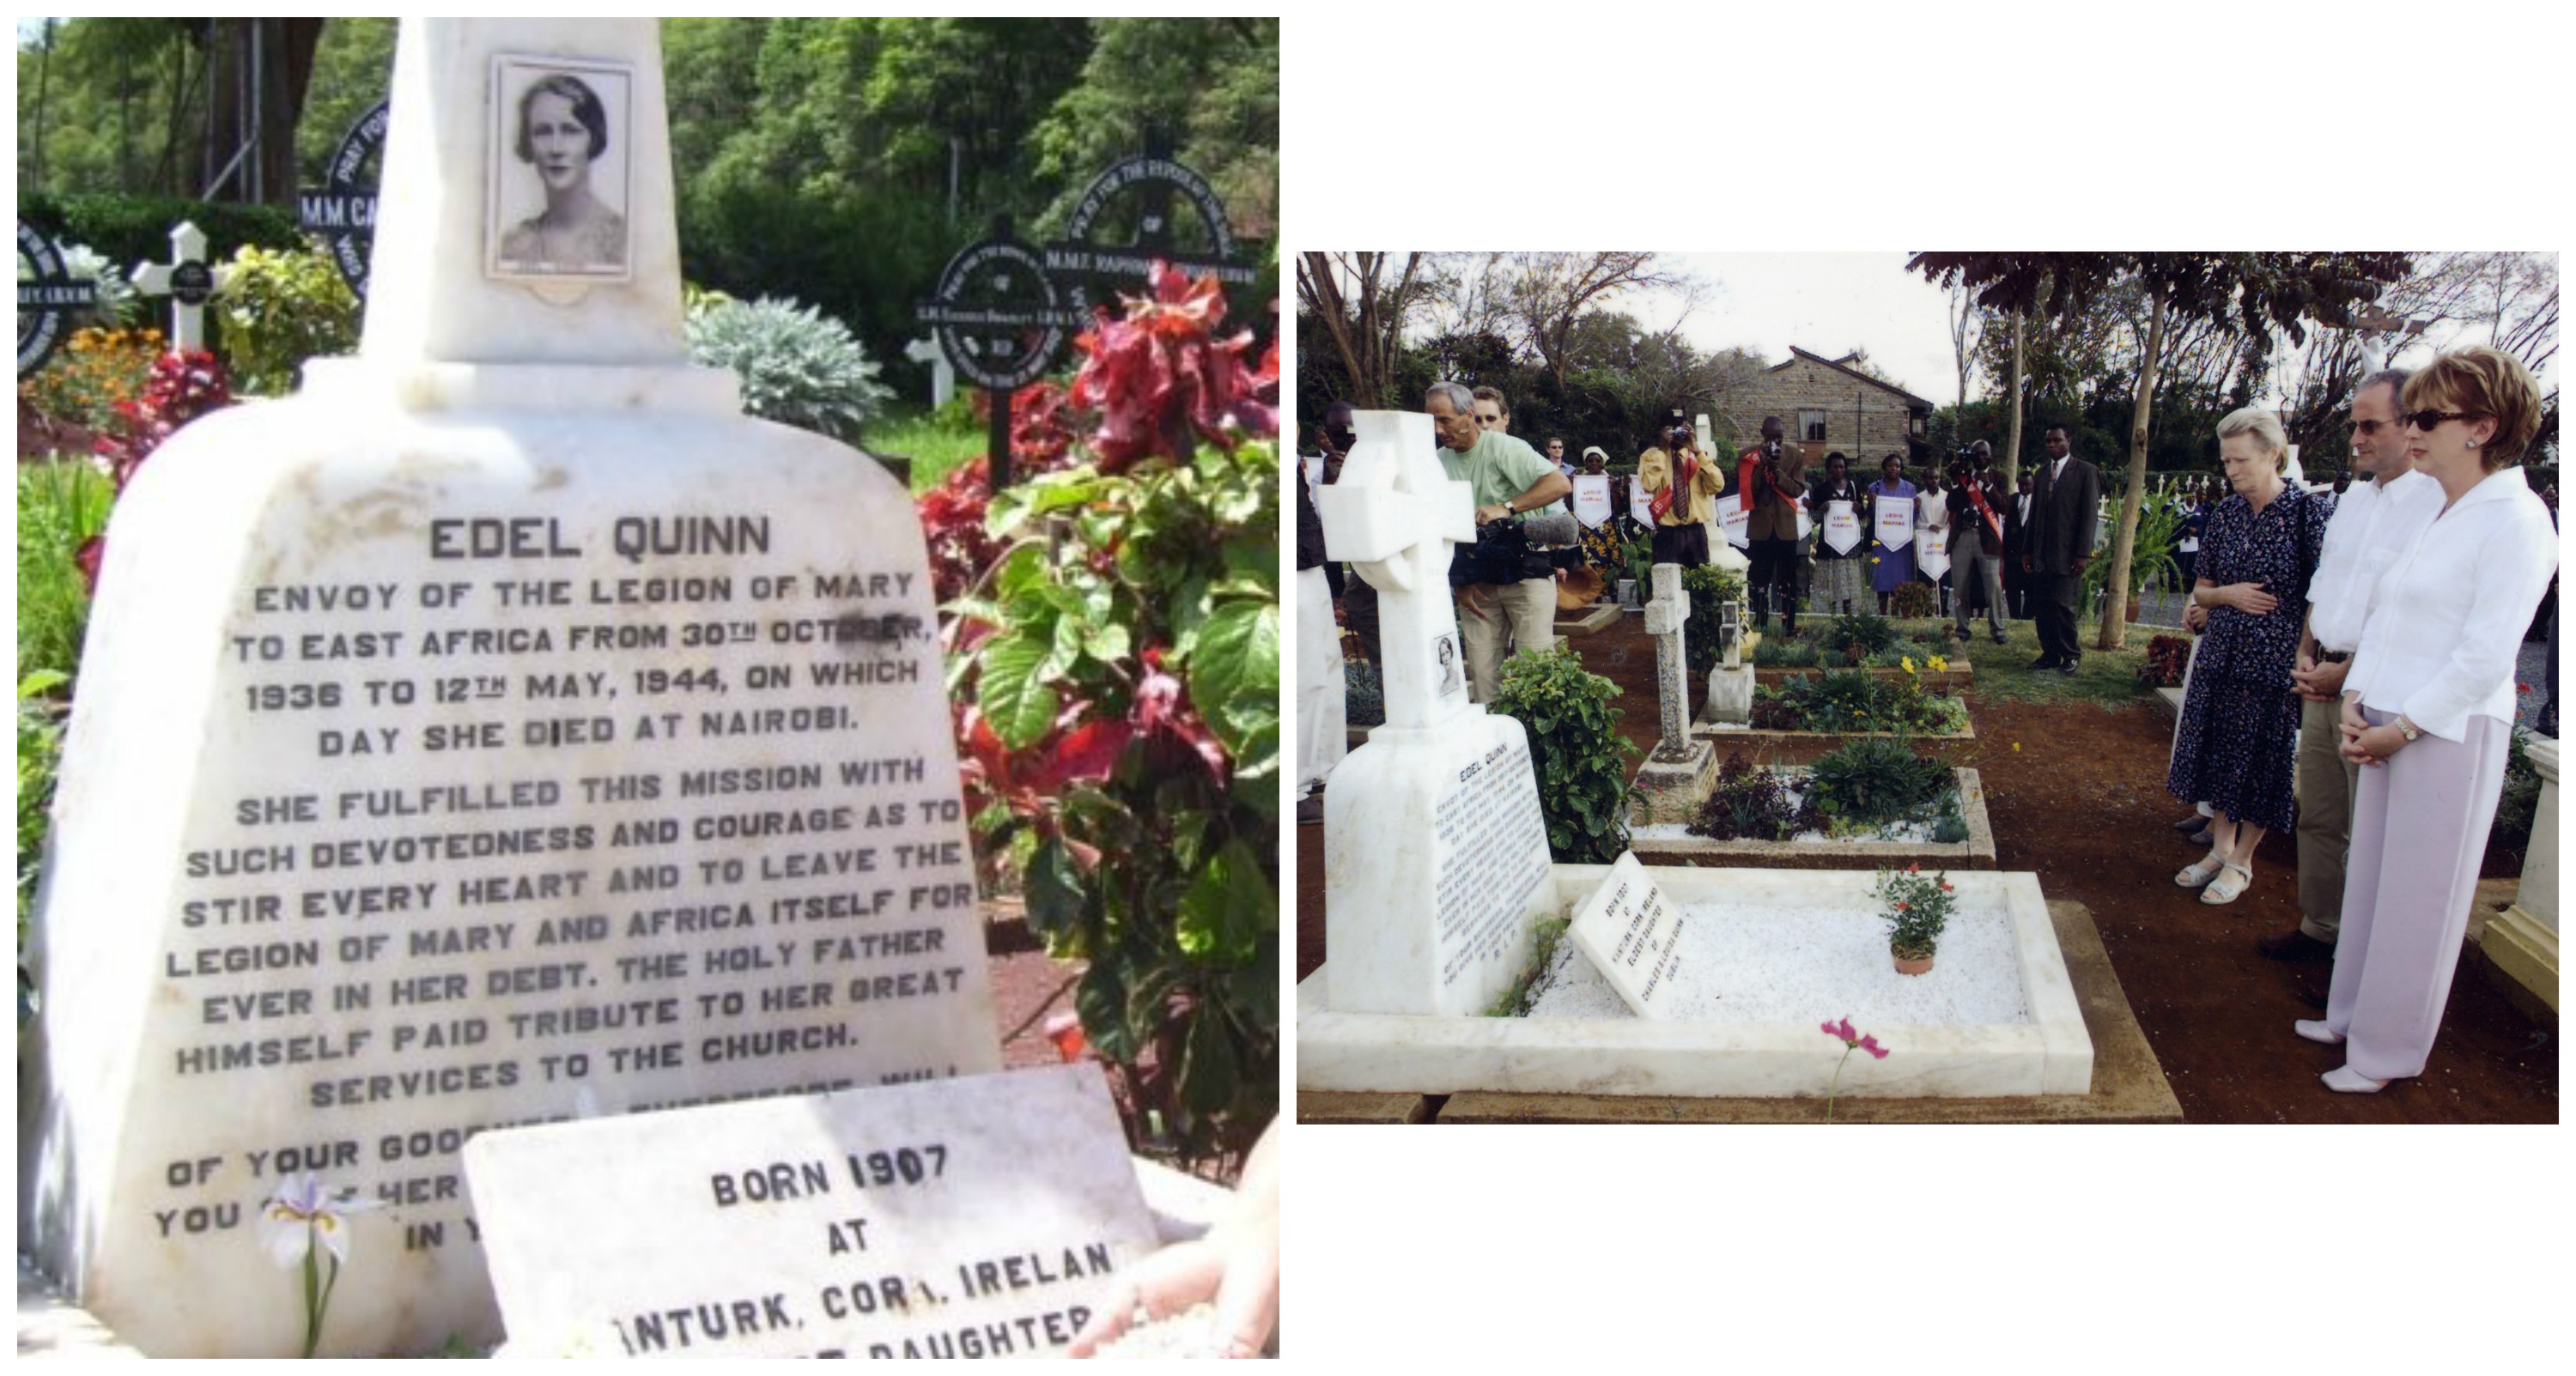 Left: Edel's tombstone in Nairobi, Kenya. Right: President McAleese visiting Edel Quinn's grave in 2001.